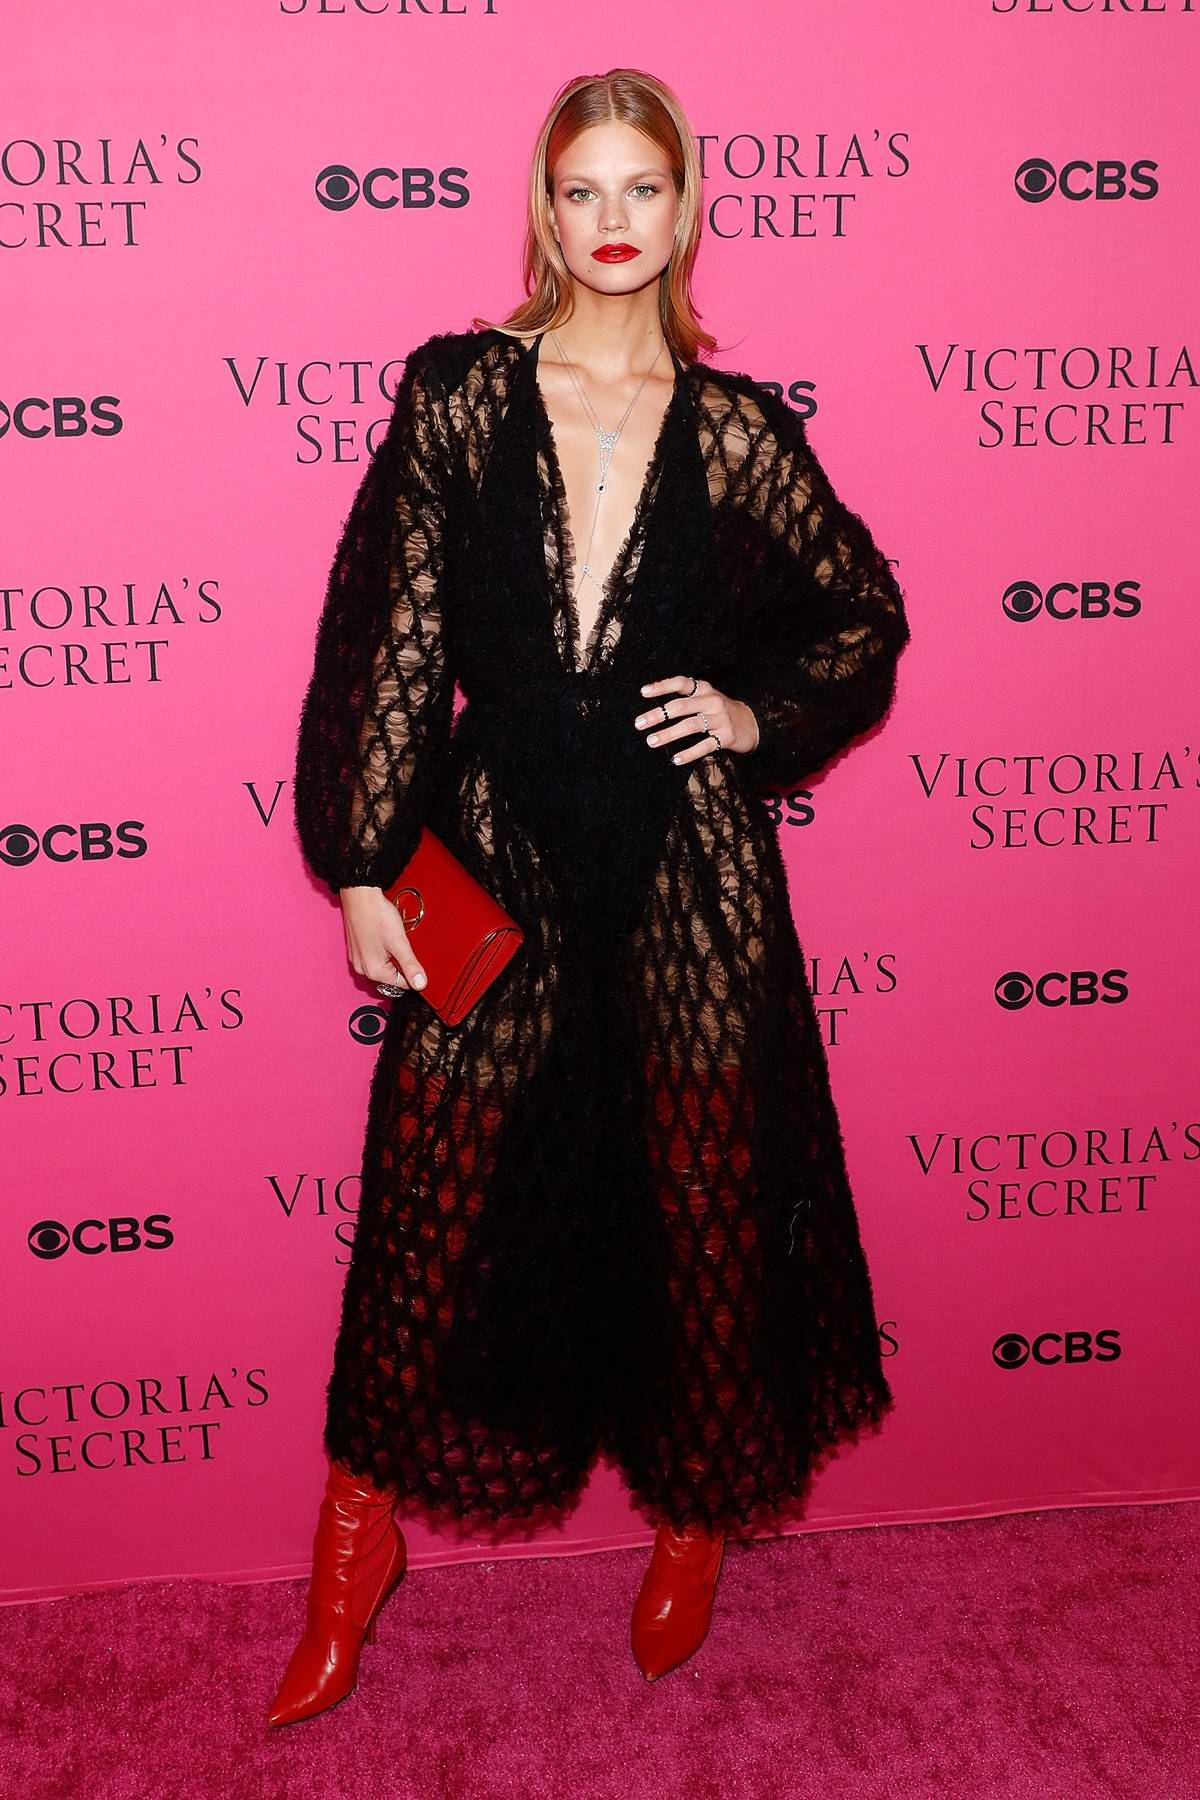 Nadine Leopold at the Victoria's Secret Fashion Show viewing party in New York